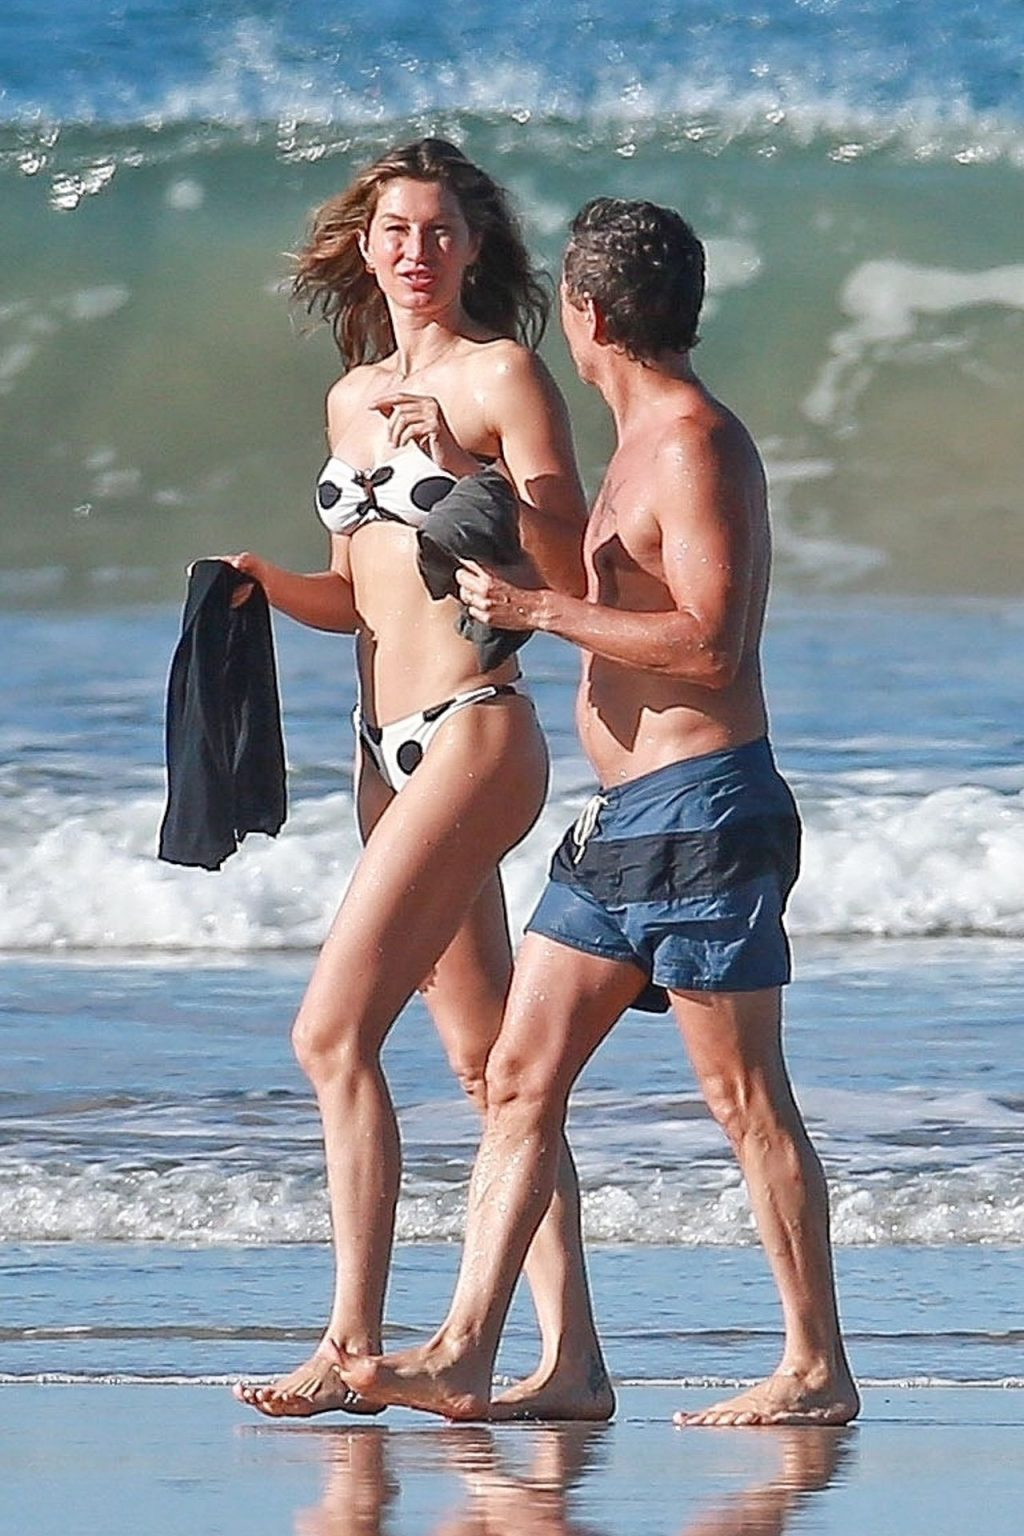 Gisele Bündchen Takes a Morning Stroll & an Eevening Dip While Vacationing in Costa Rica (14 Photos)